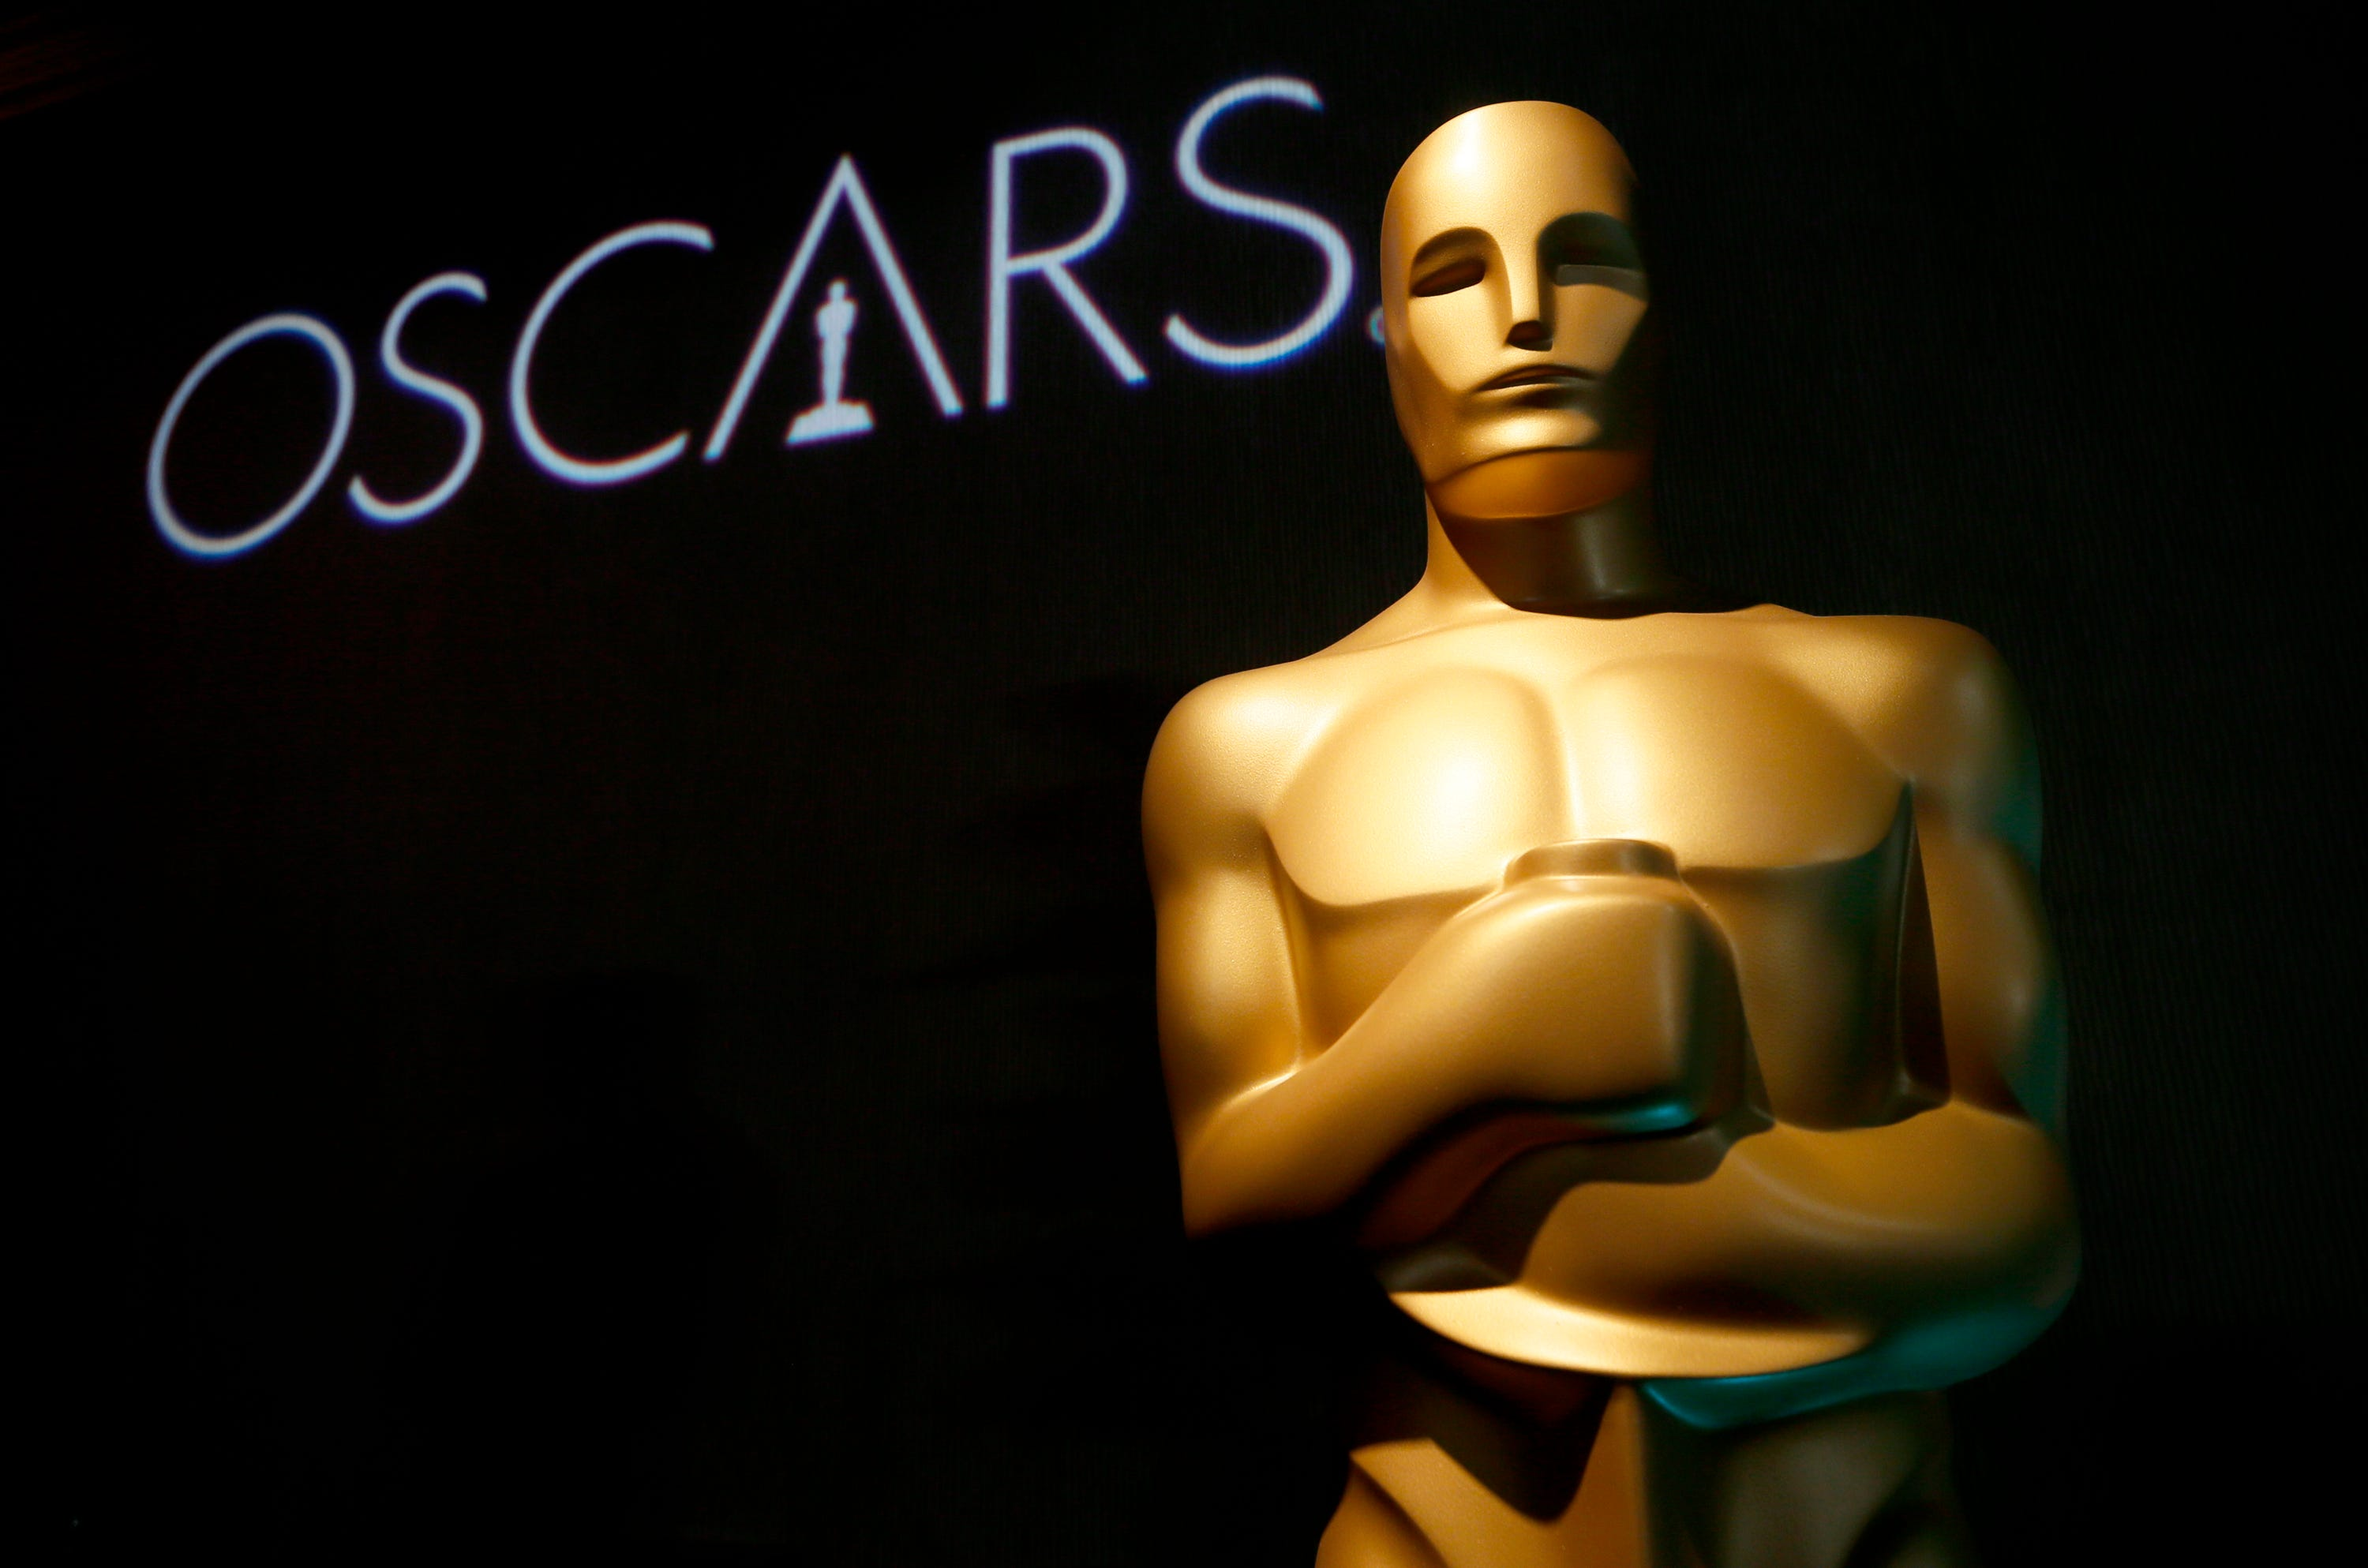 The Oscars will give out these four awards off-air this year